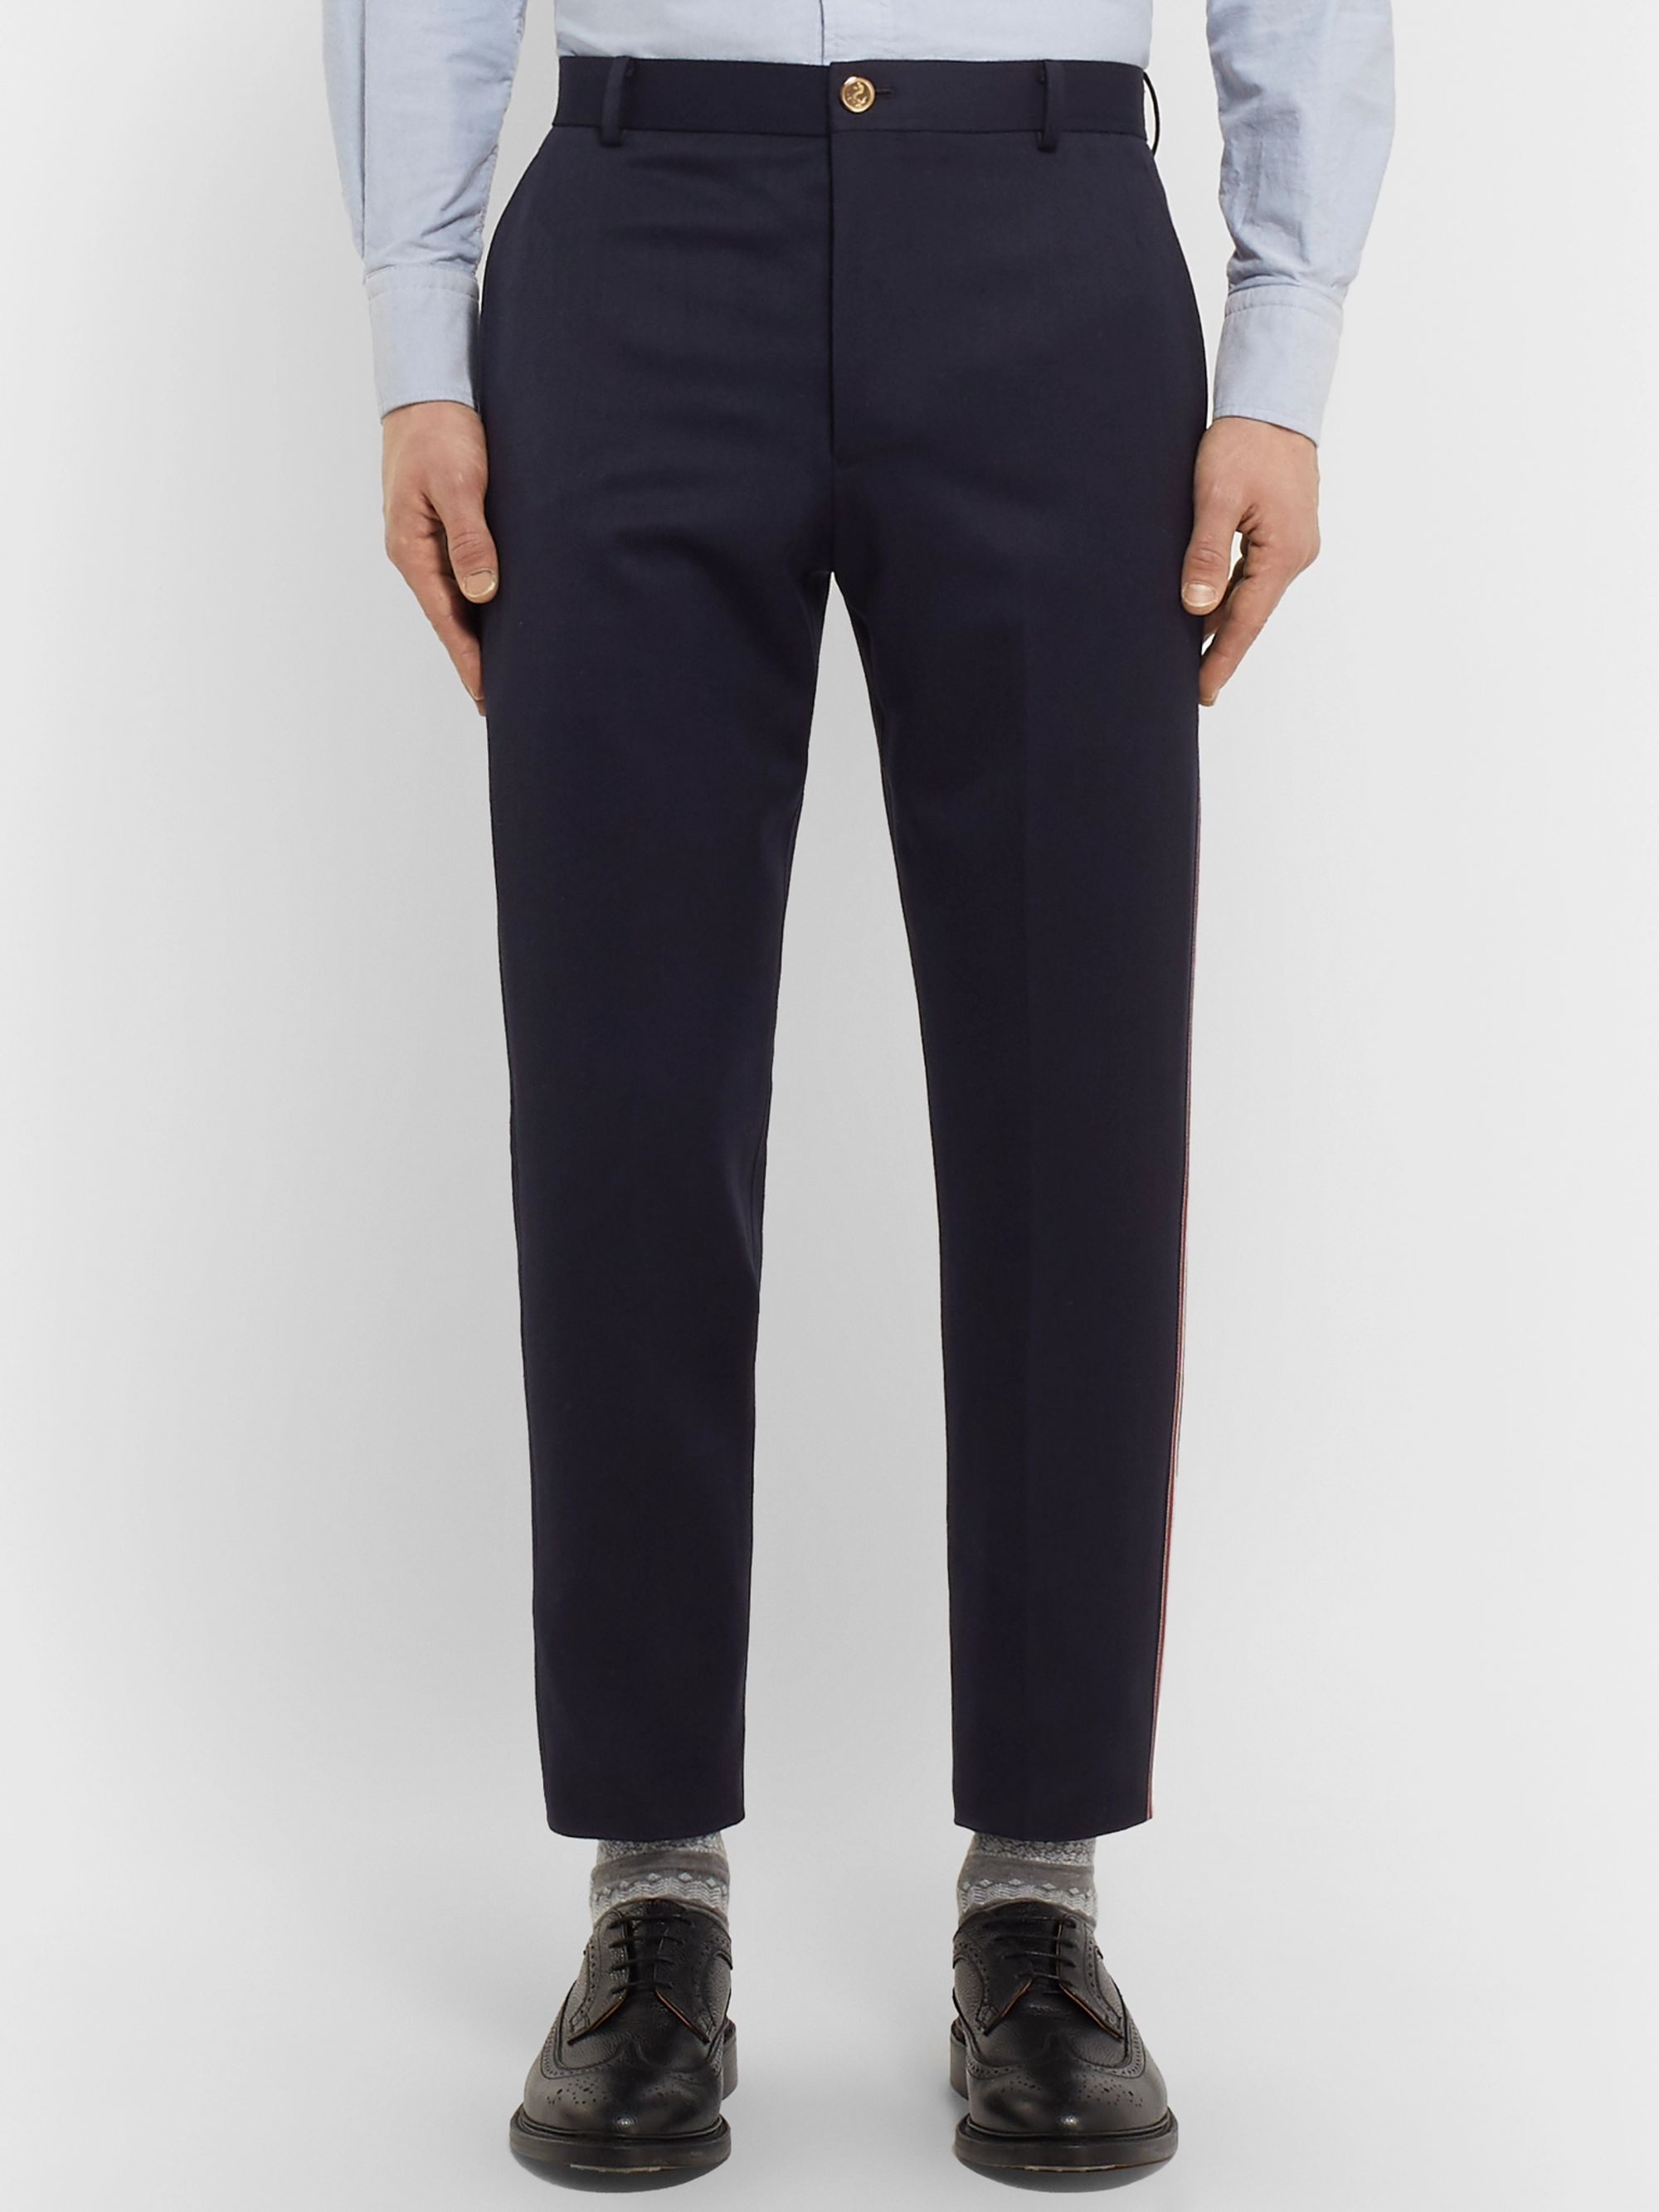 Thom Browne Navy Tapered Striped Wool and Cotton-Blend Trousers